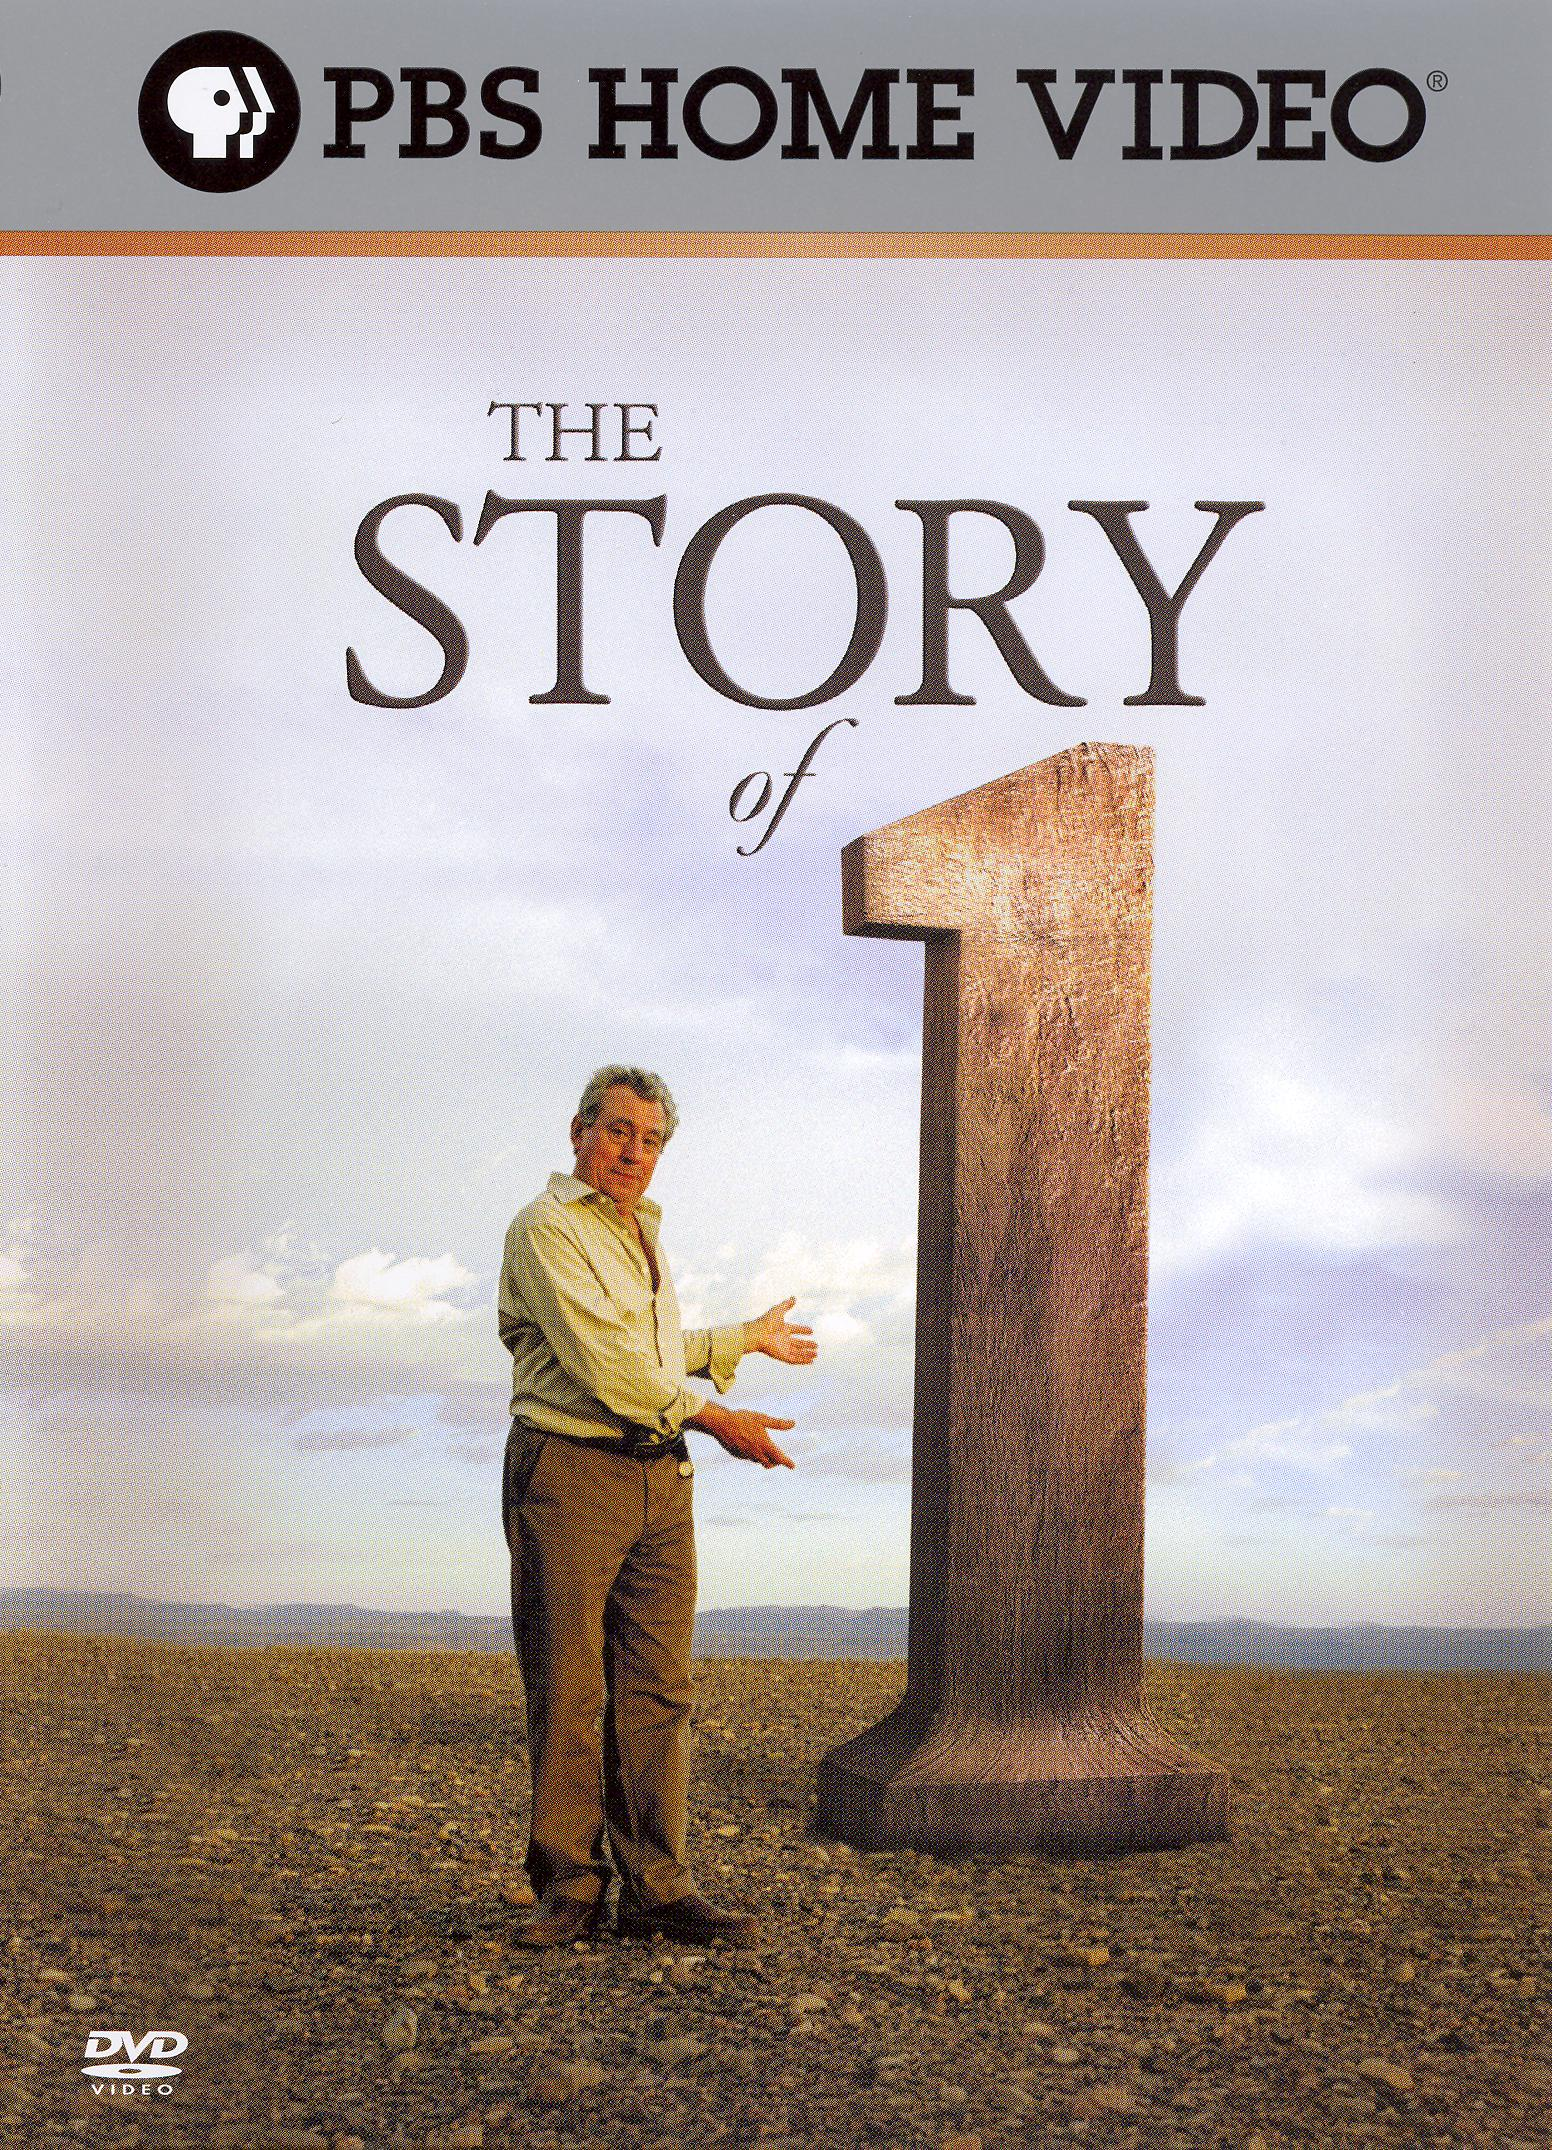 The Story of 1